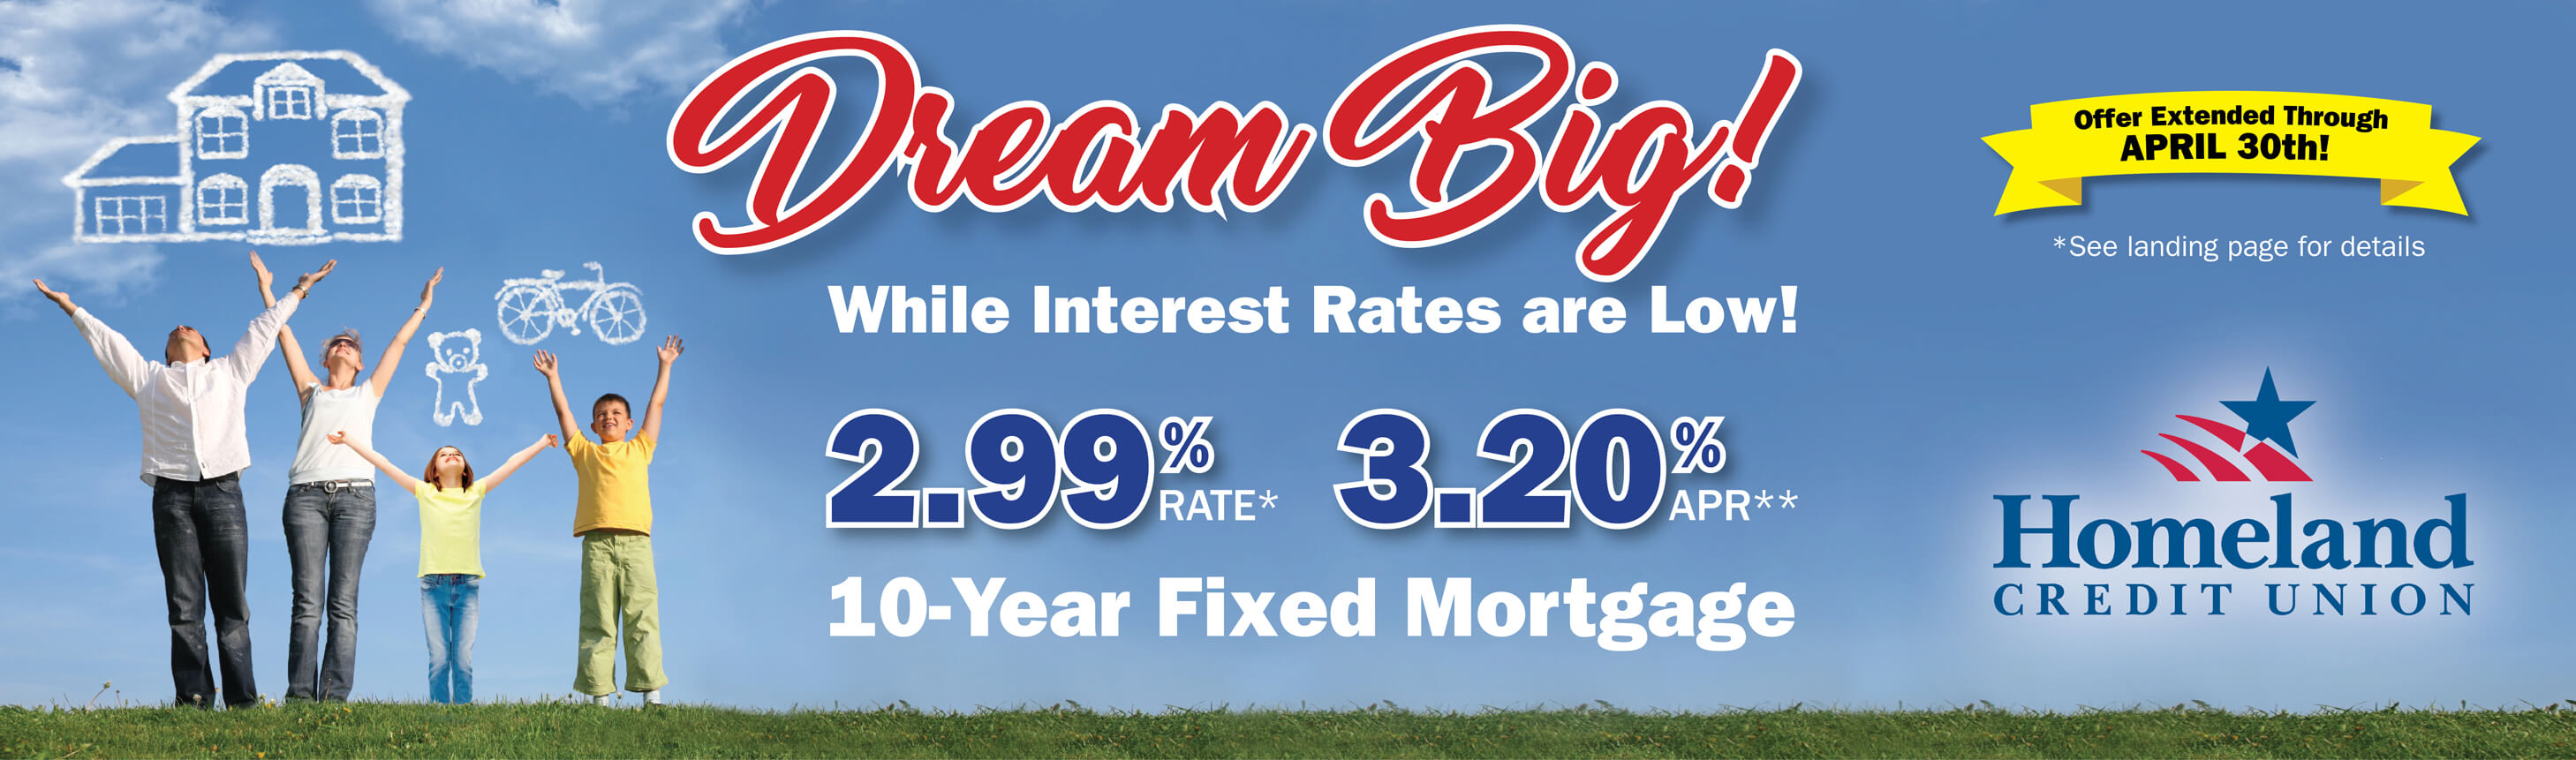 Dream Big while interest rates are low! 2.99% Interest Rate 3.20% Annual Percentage Rate* 10 Year Fixed Mortgage. Find the right loan for you. See landing page for details.